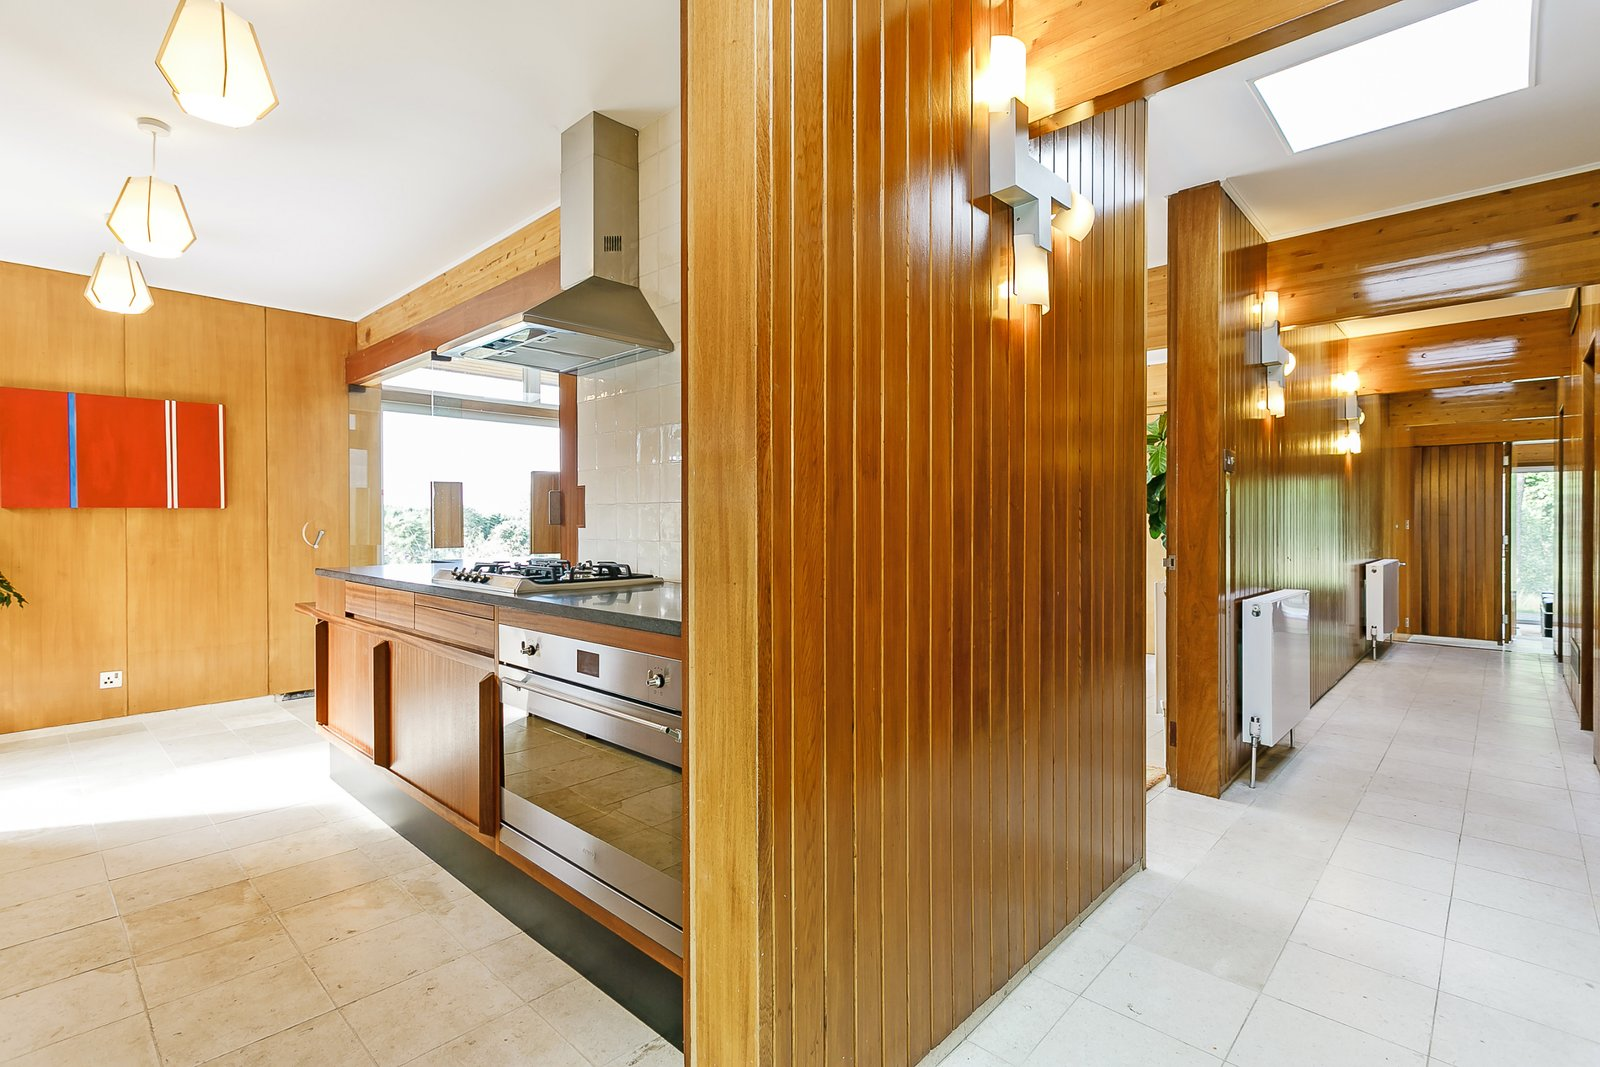 Kitchen, Wall Oven, Range, Wood, Wall, Ceiling, Range Hood, and Subway Tile  Best Kitchen Range Hood Ceiling Wall Oven Subway Tile Range Photos from A Modernist Time Capsule by Erno Goldfinger Asks $4M